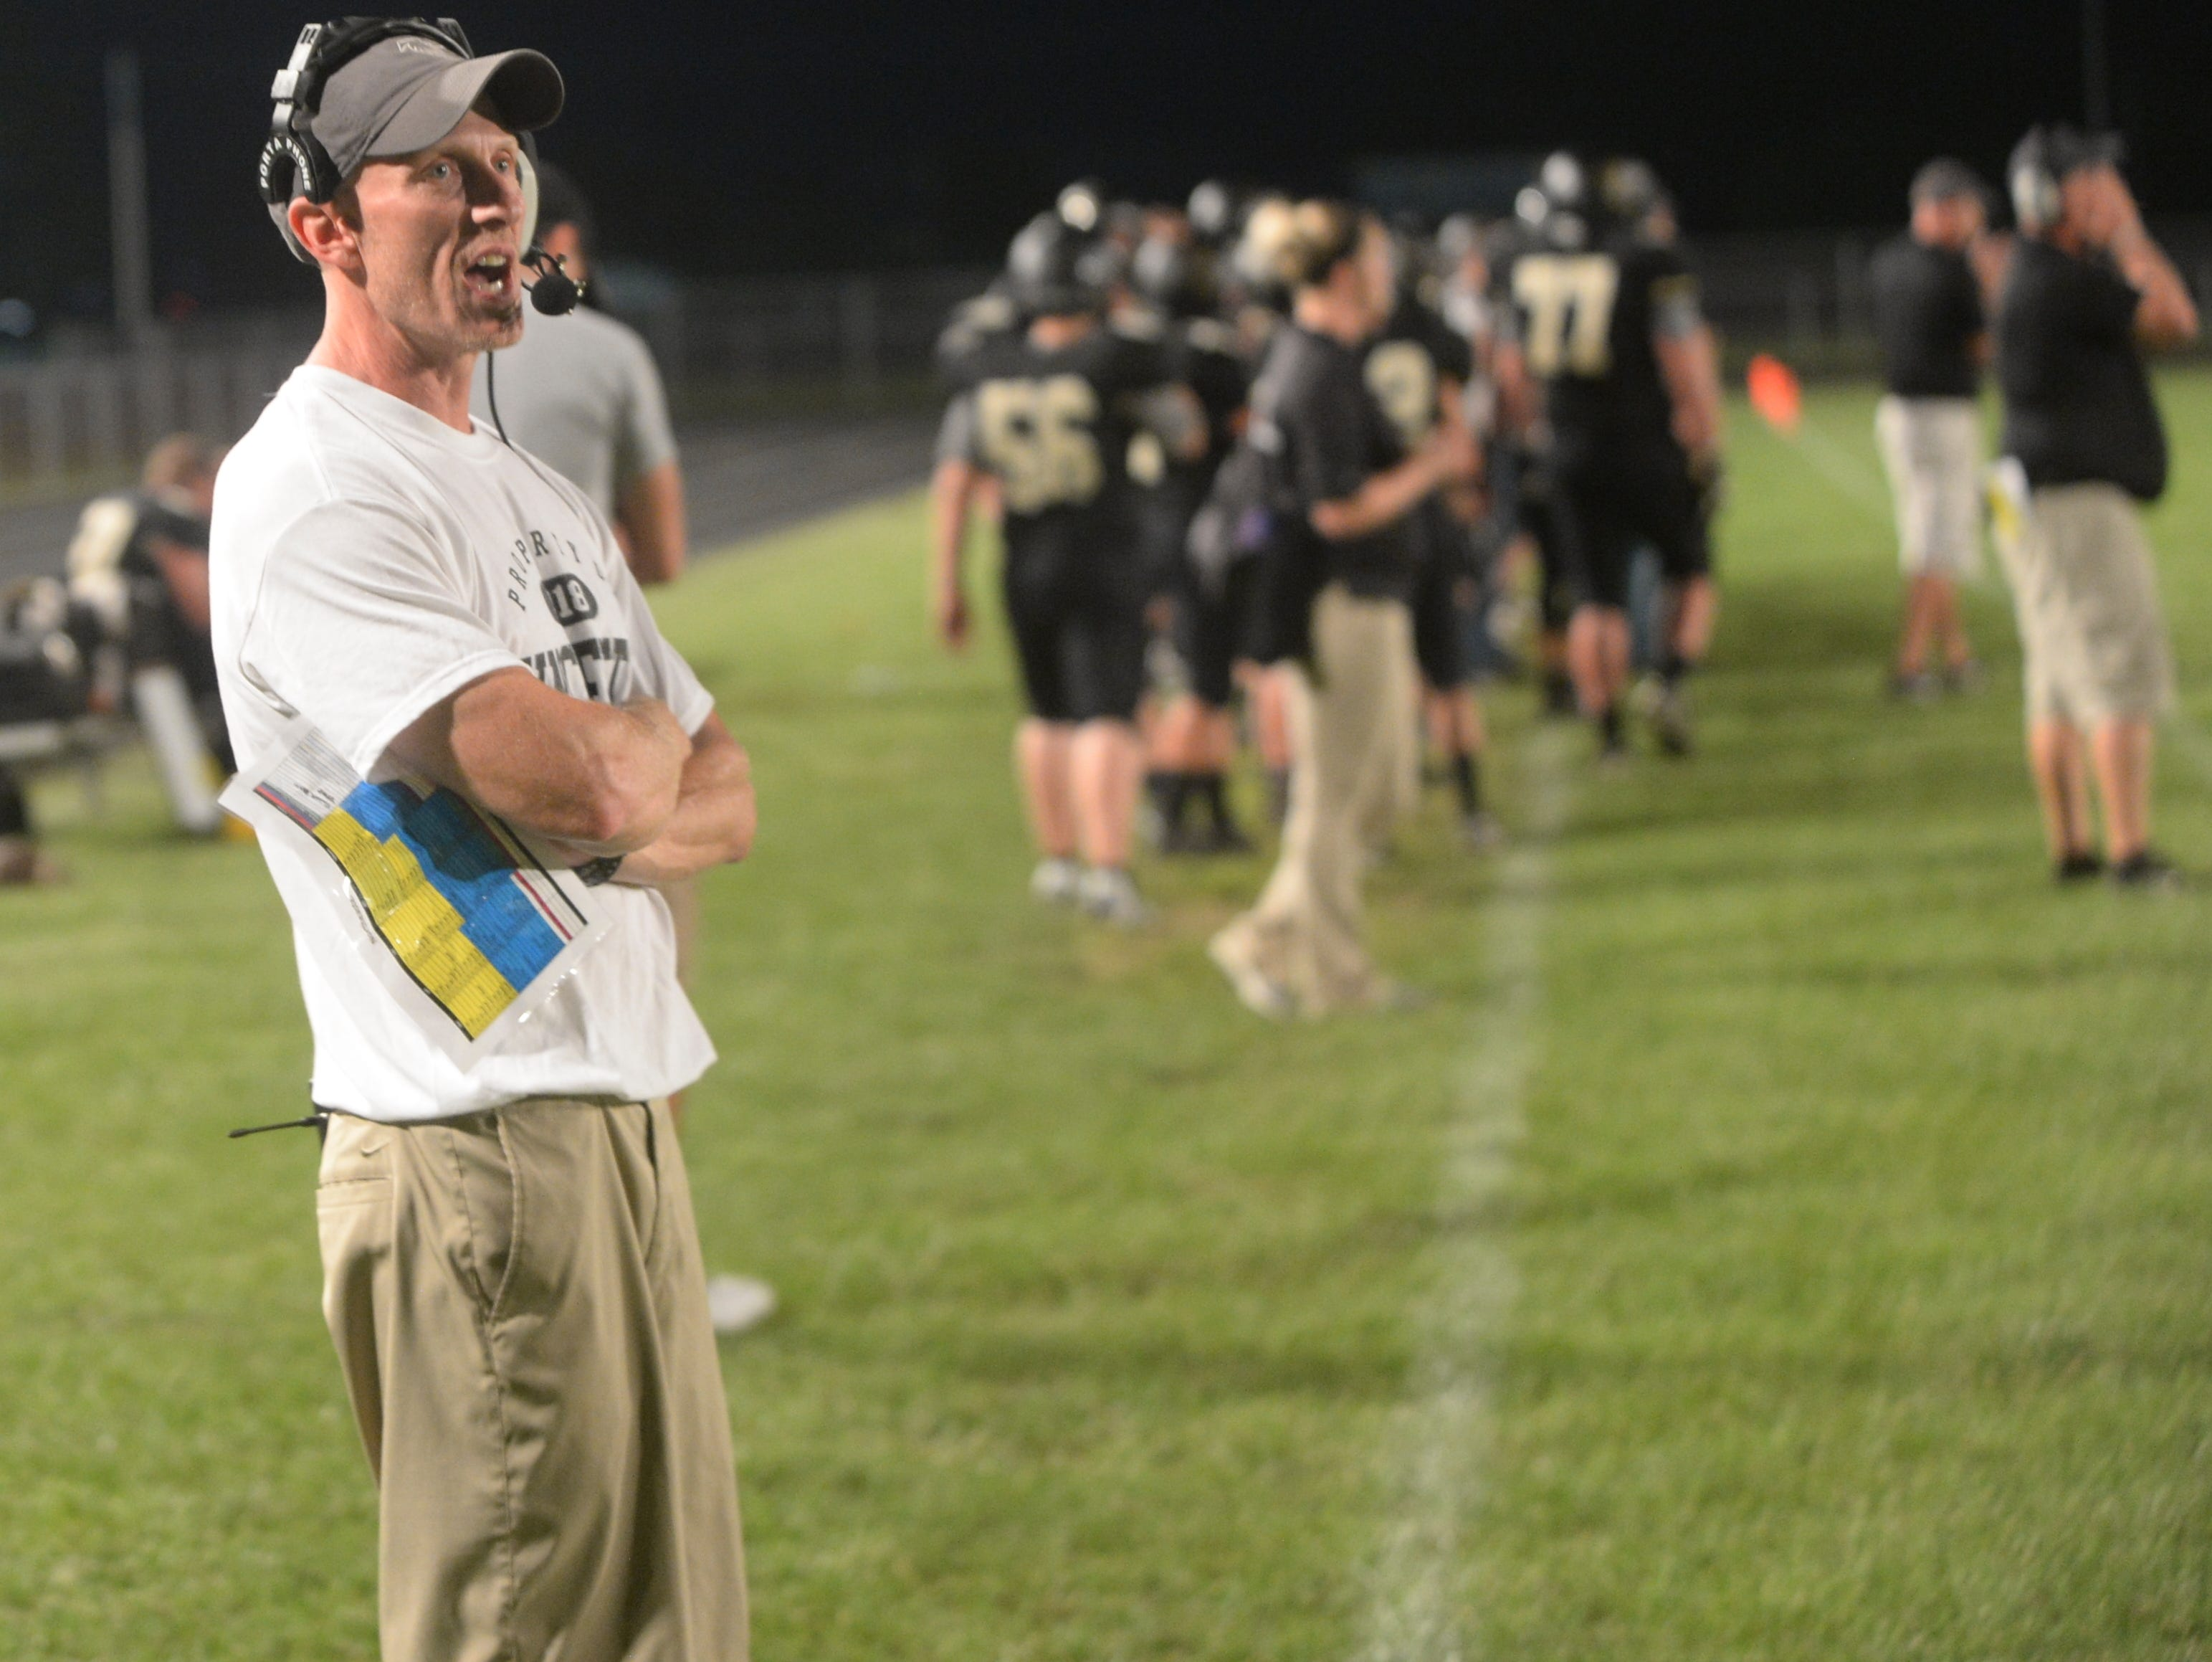 Winchester football coach Mike Jones during a football game between Winchester and Northeastern Friday, Aug. 31, 2018. Northeastern won 24-20.